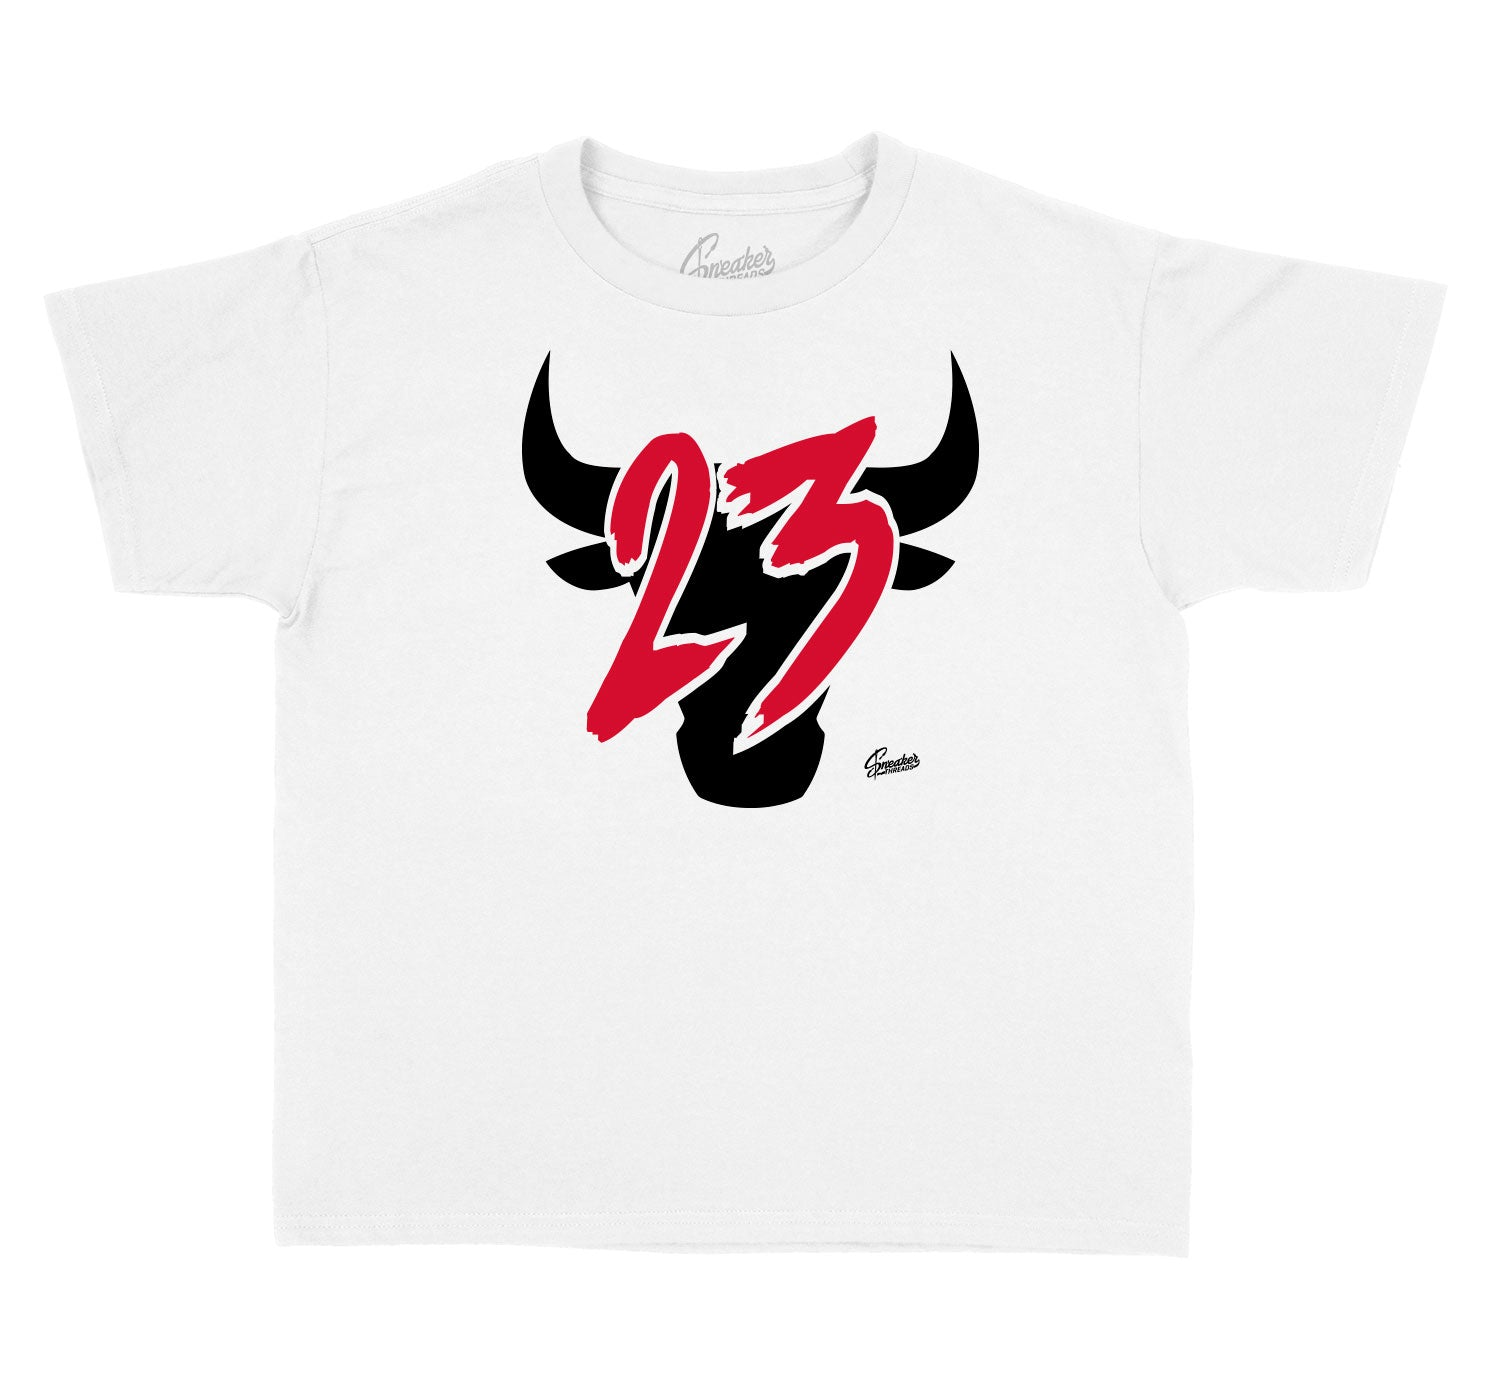 Retro gym red Jordan collection matching kids t shirt collection